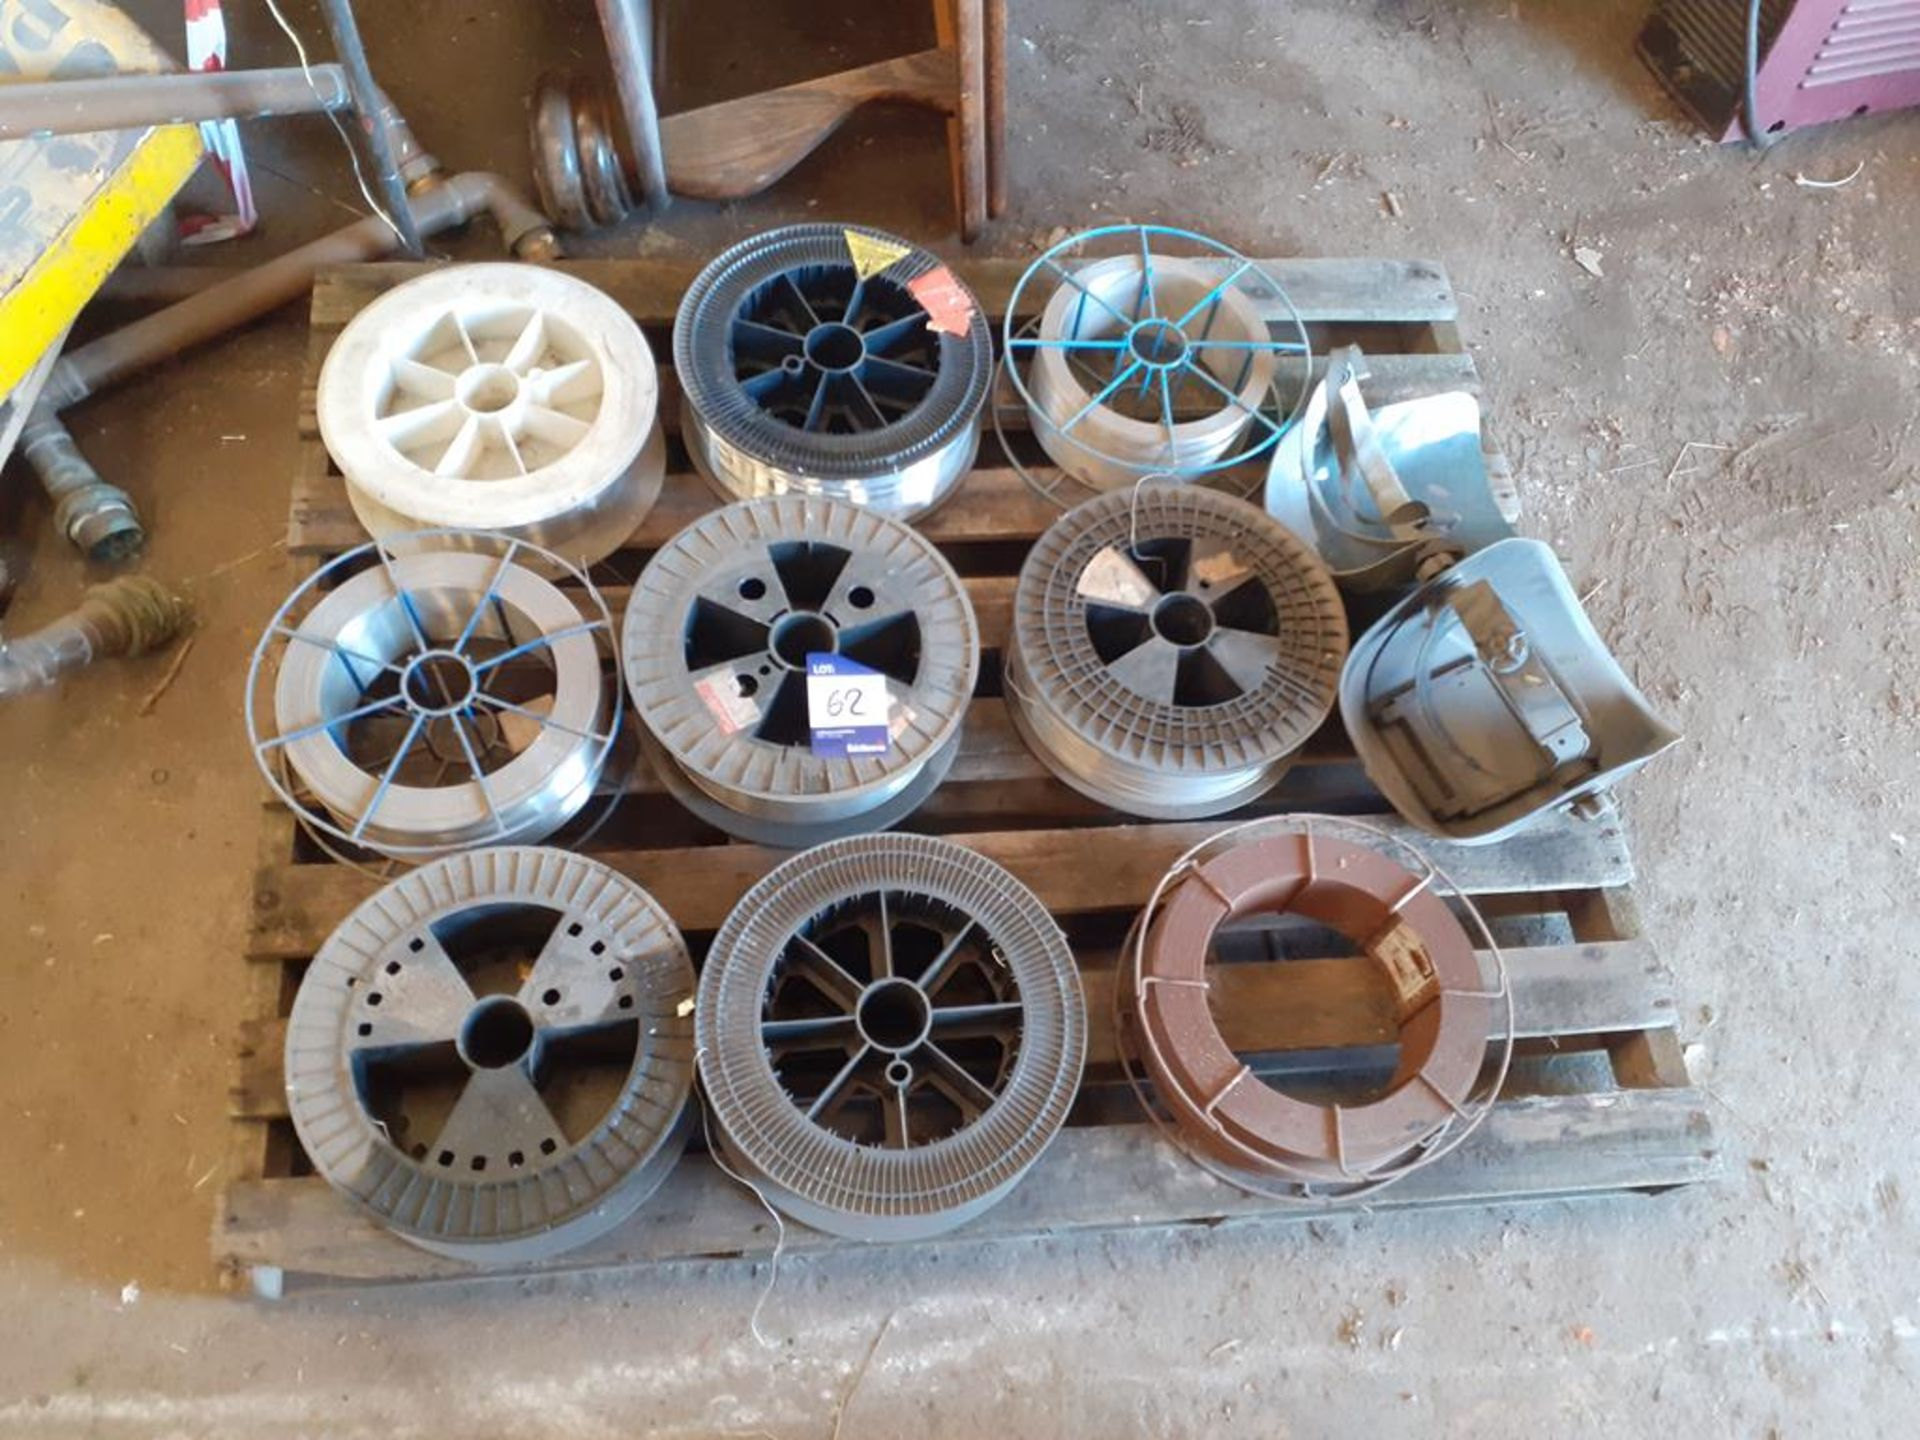 Pallet to contain qty of welding wire and welding